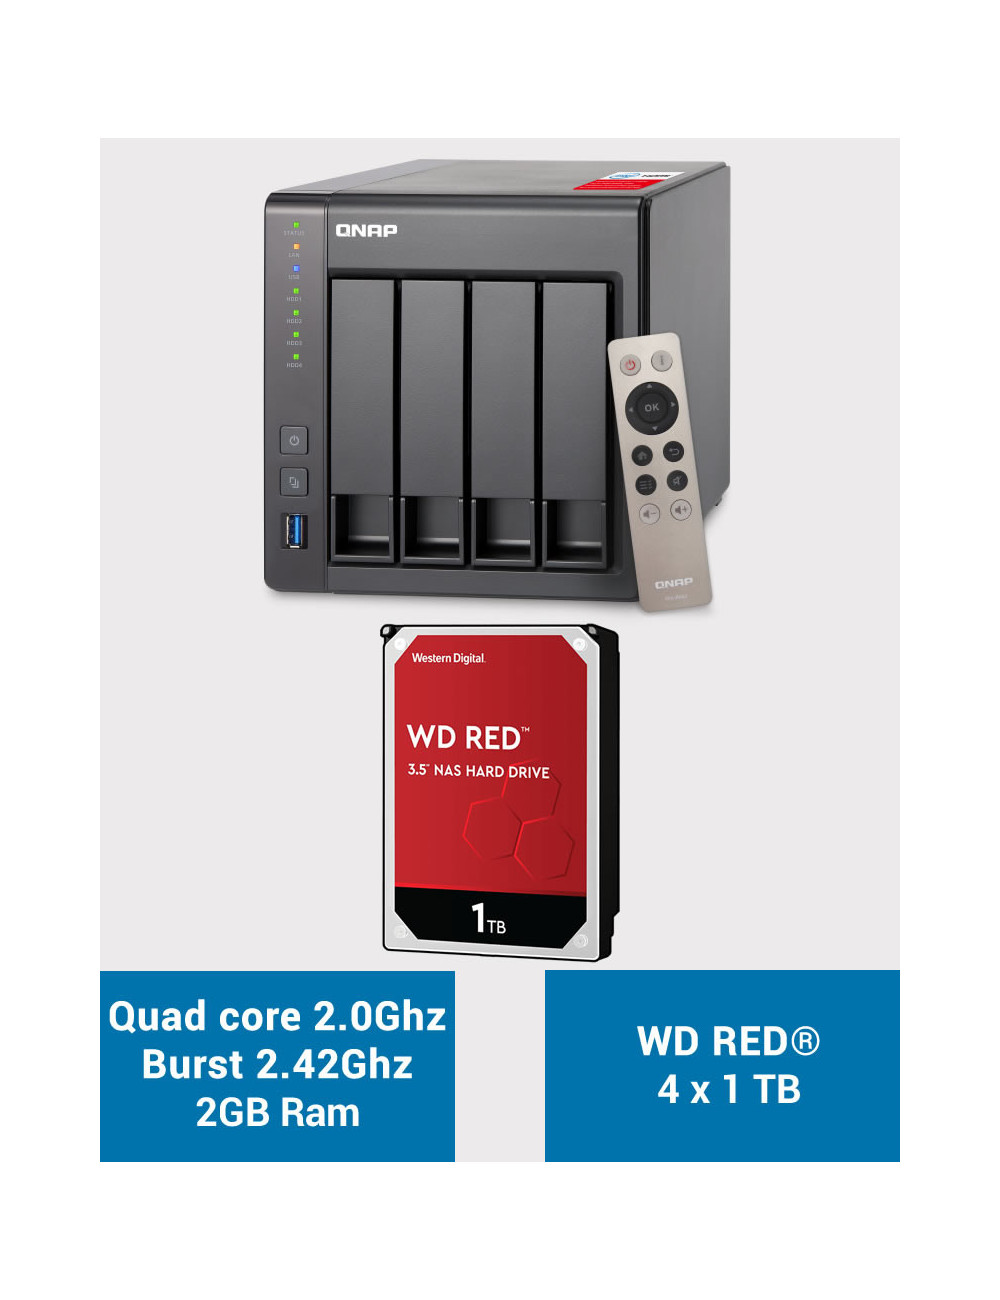 QNAP TS-451+ 2Go Serveur NAS WD RED 4 To (4x1To)